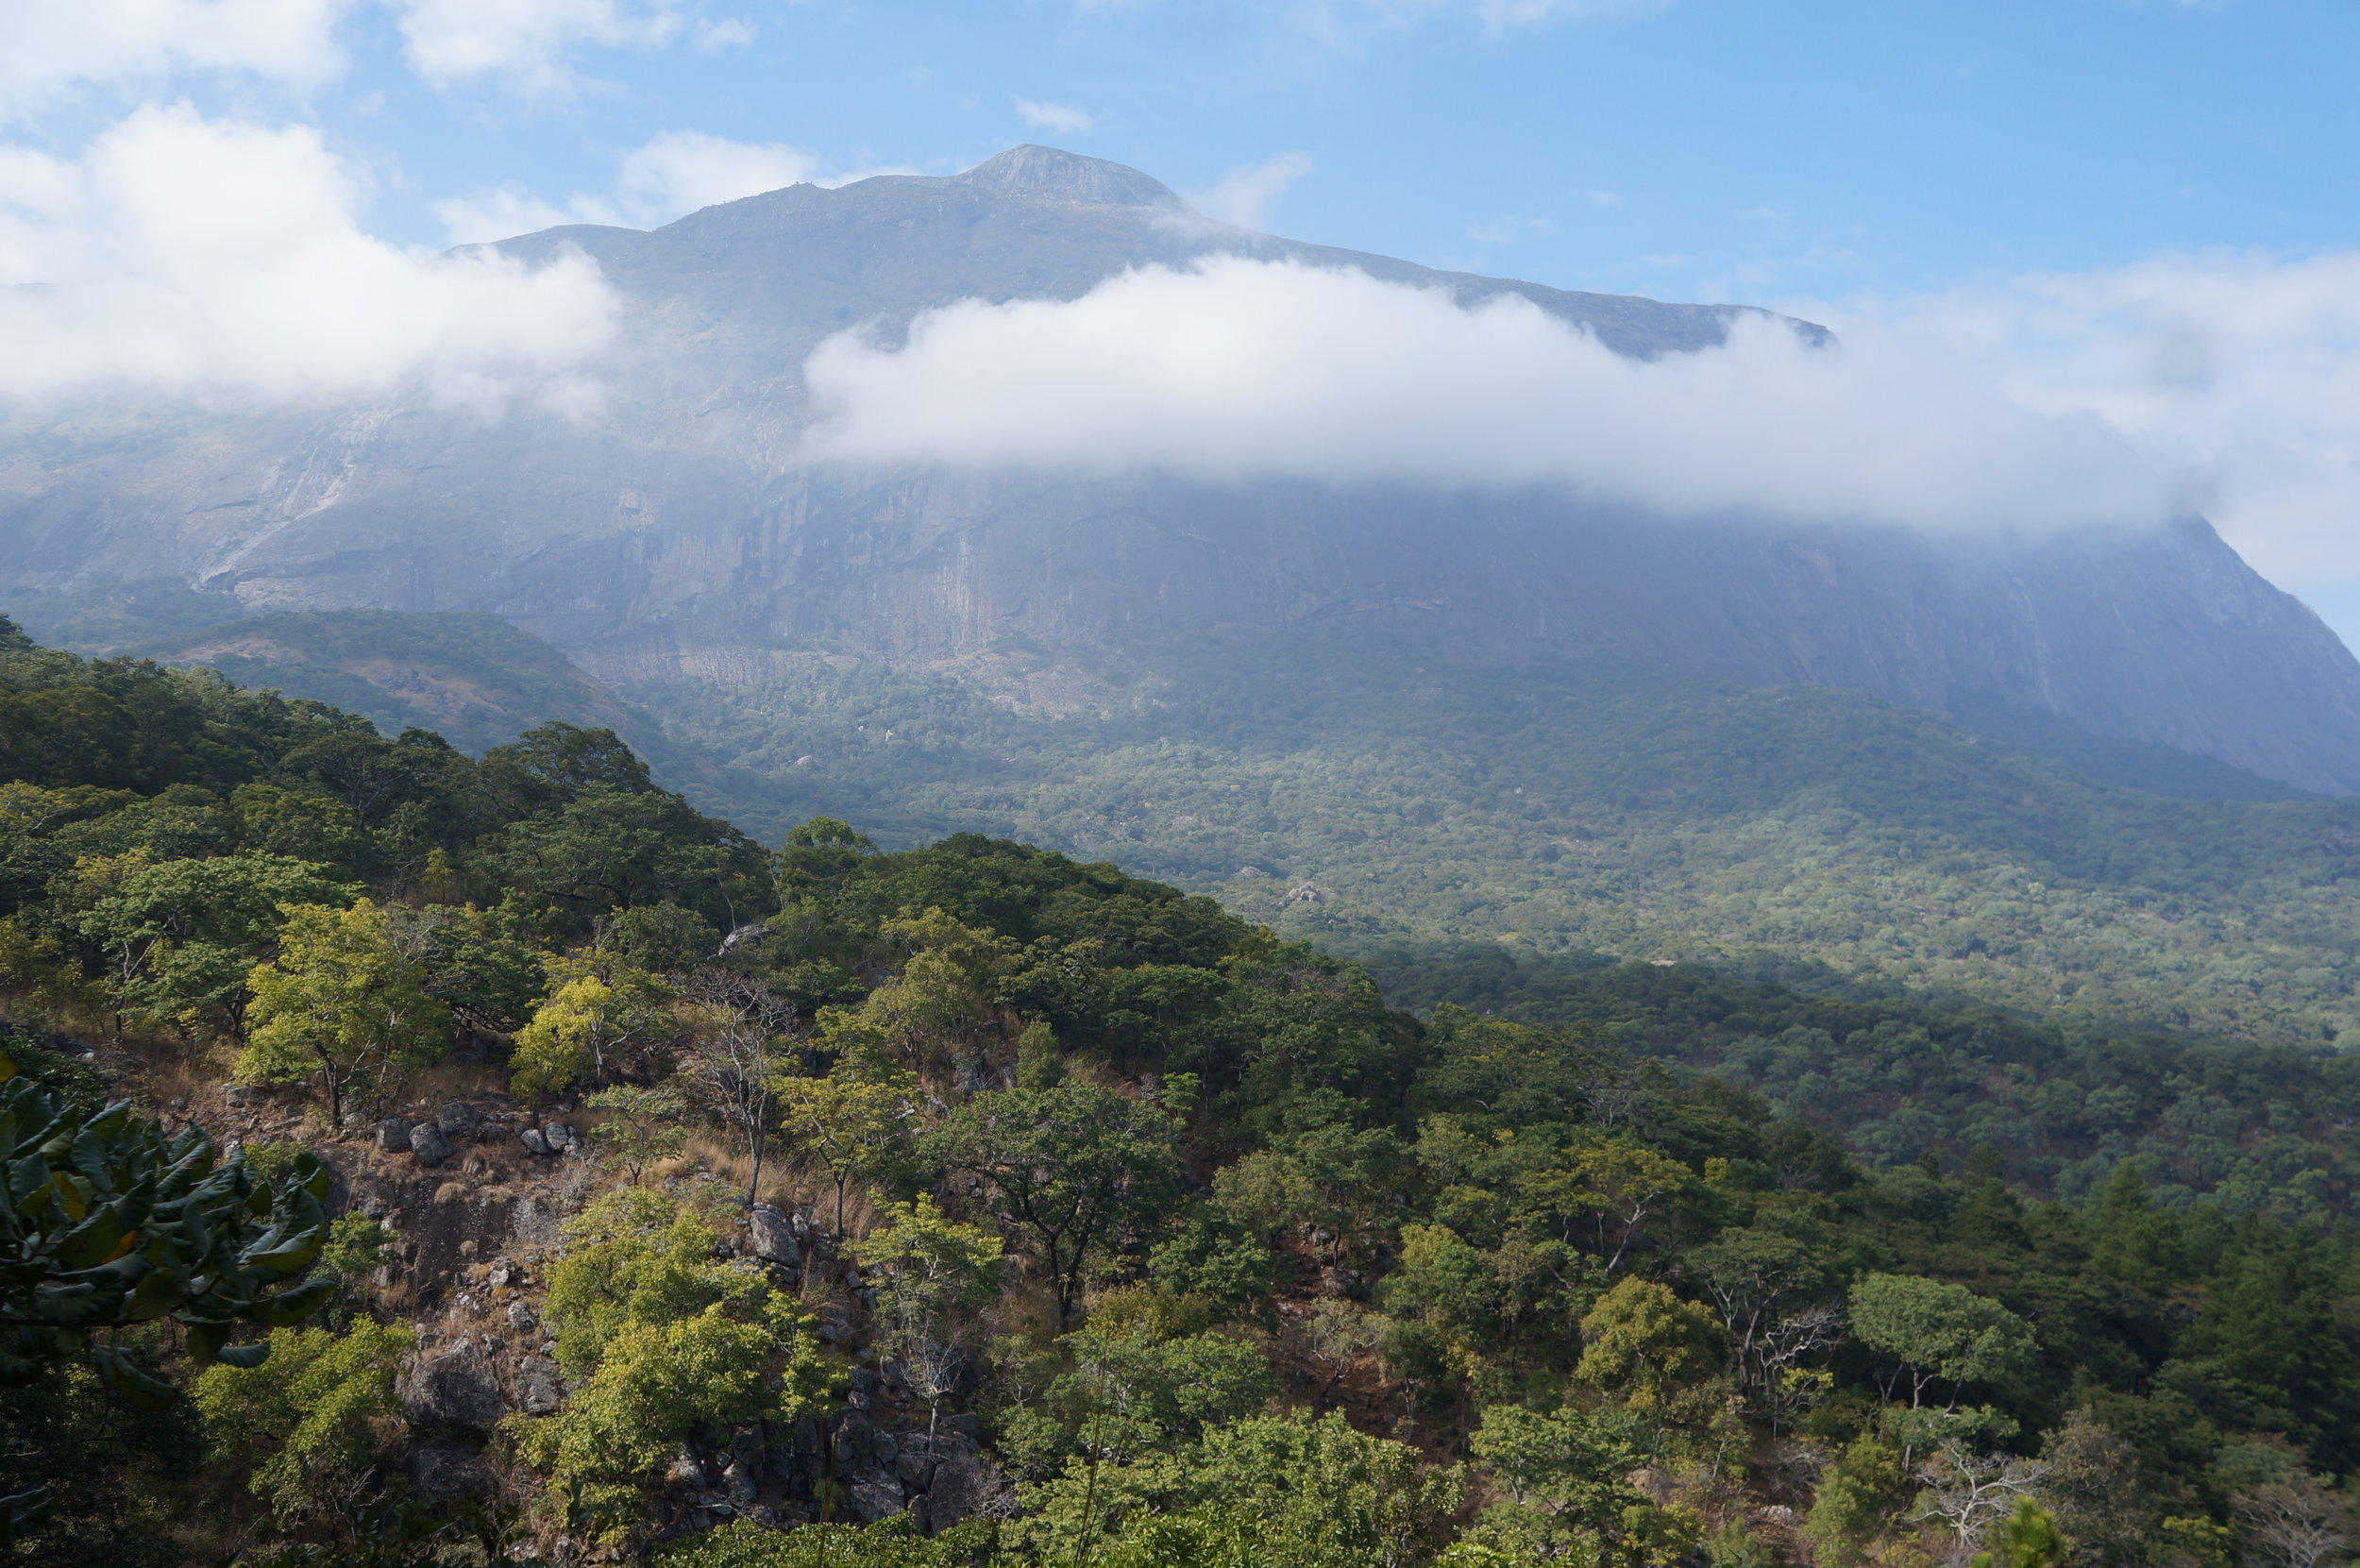 The view from the base of Mulanje. The scale of this mountain is hard to capture.